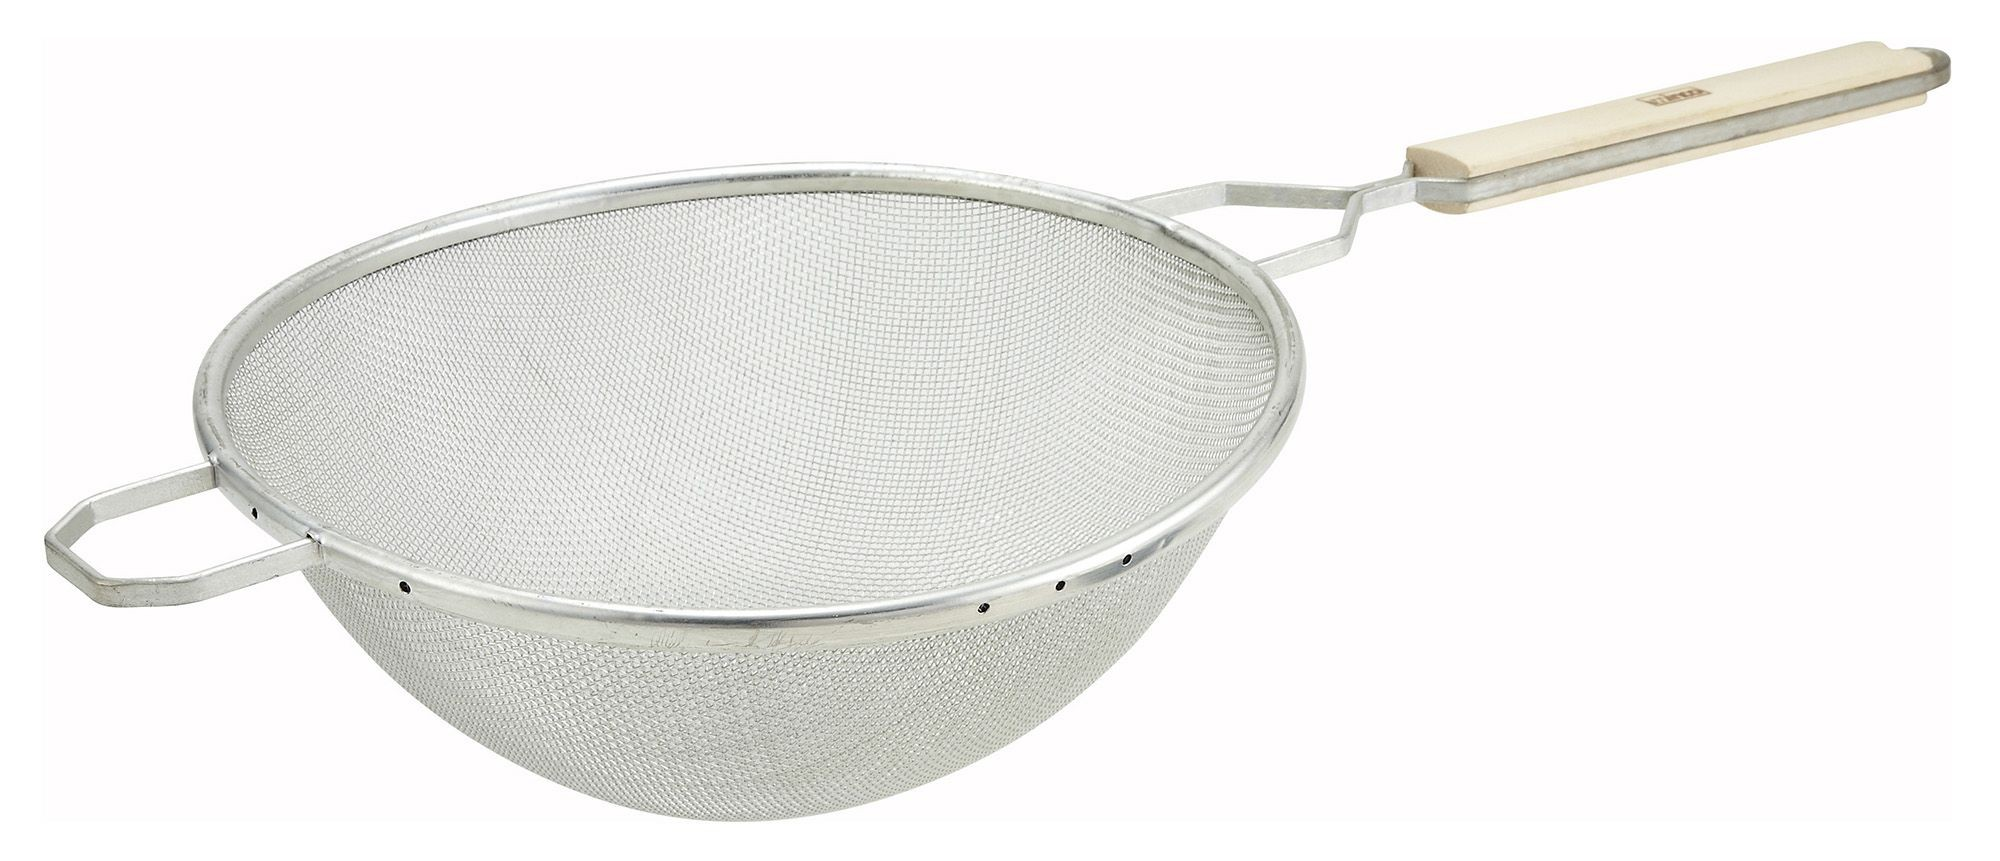 Single Tinned Mesh Medium Strainer With Wood Handle - 10-1/4